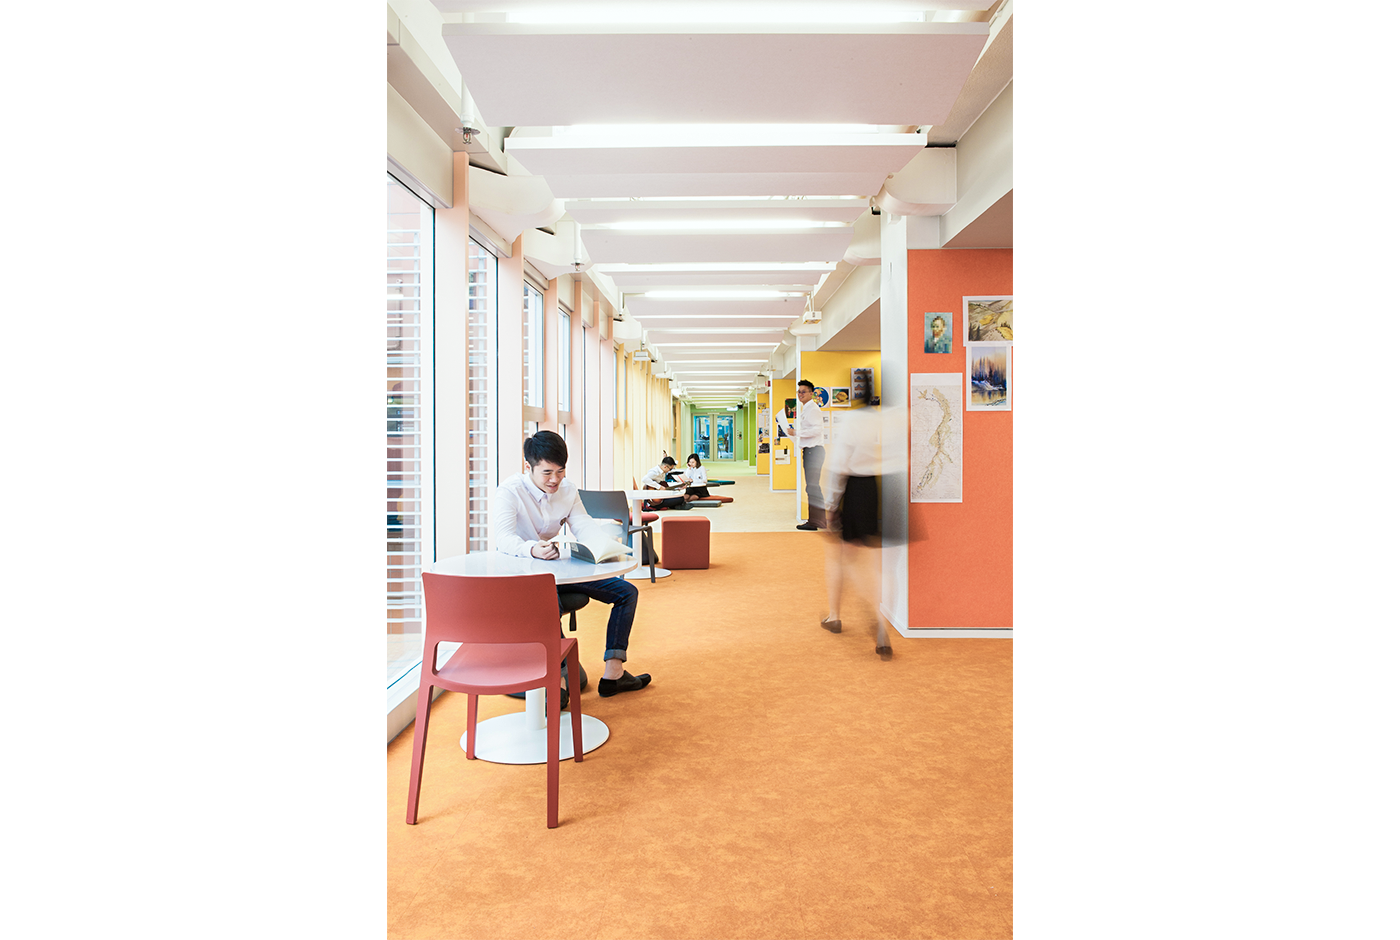 Learning Space, Yew Chung International School